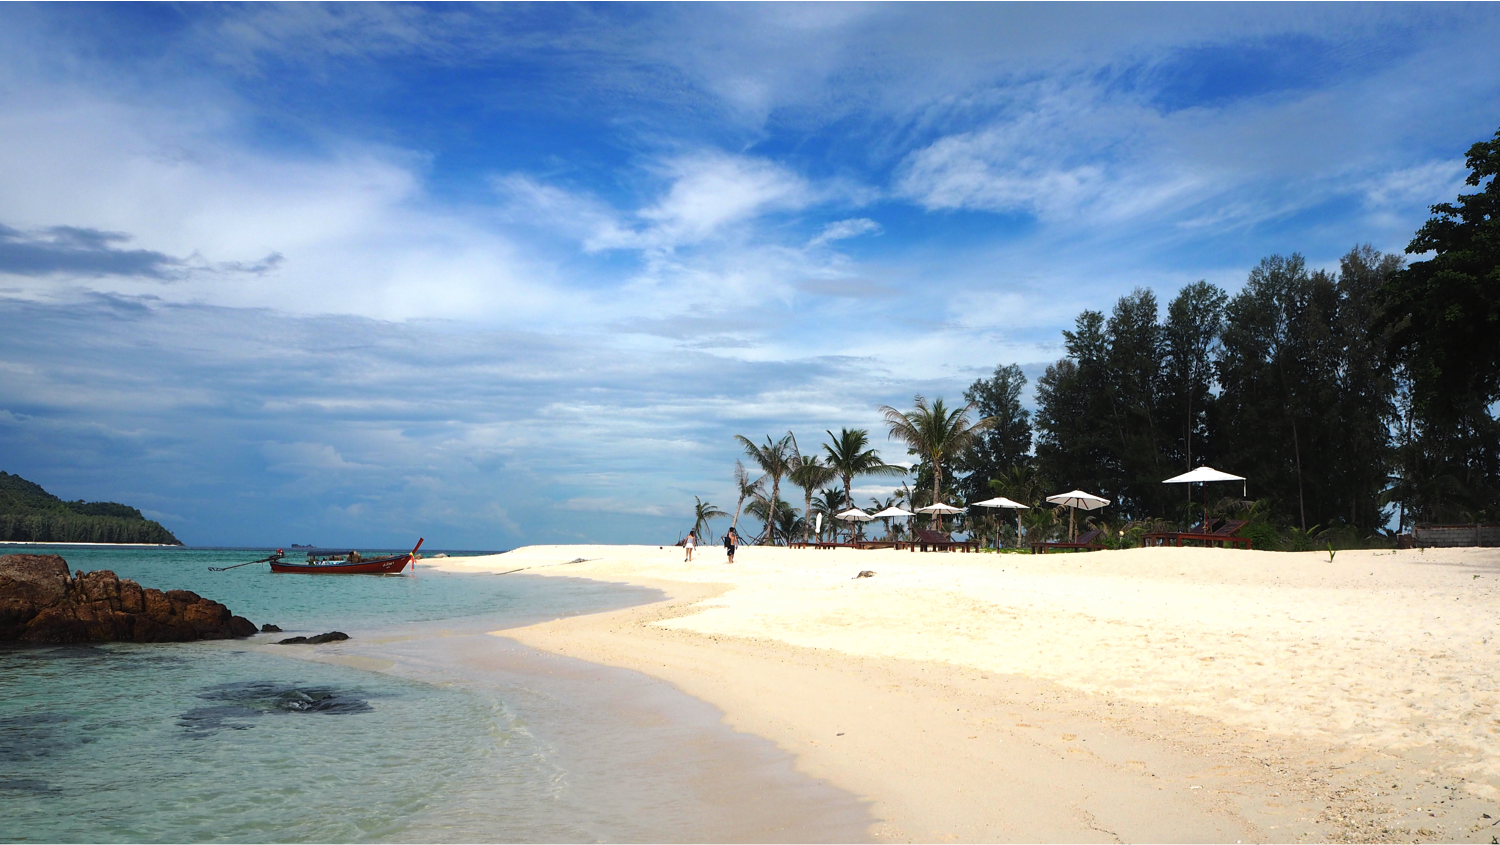 Koh Lipe tropical island